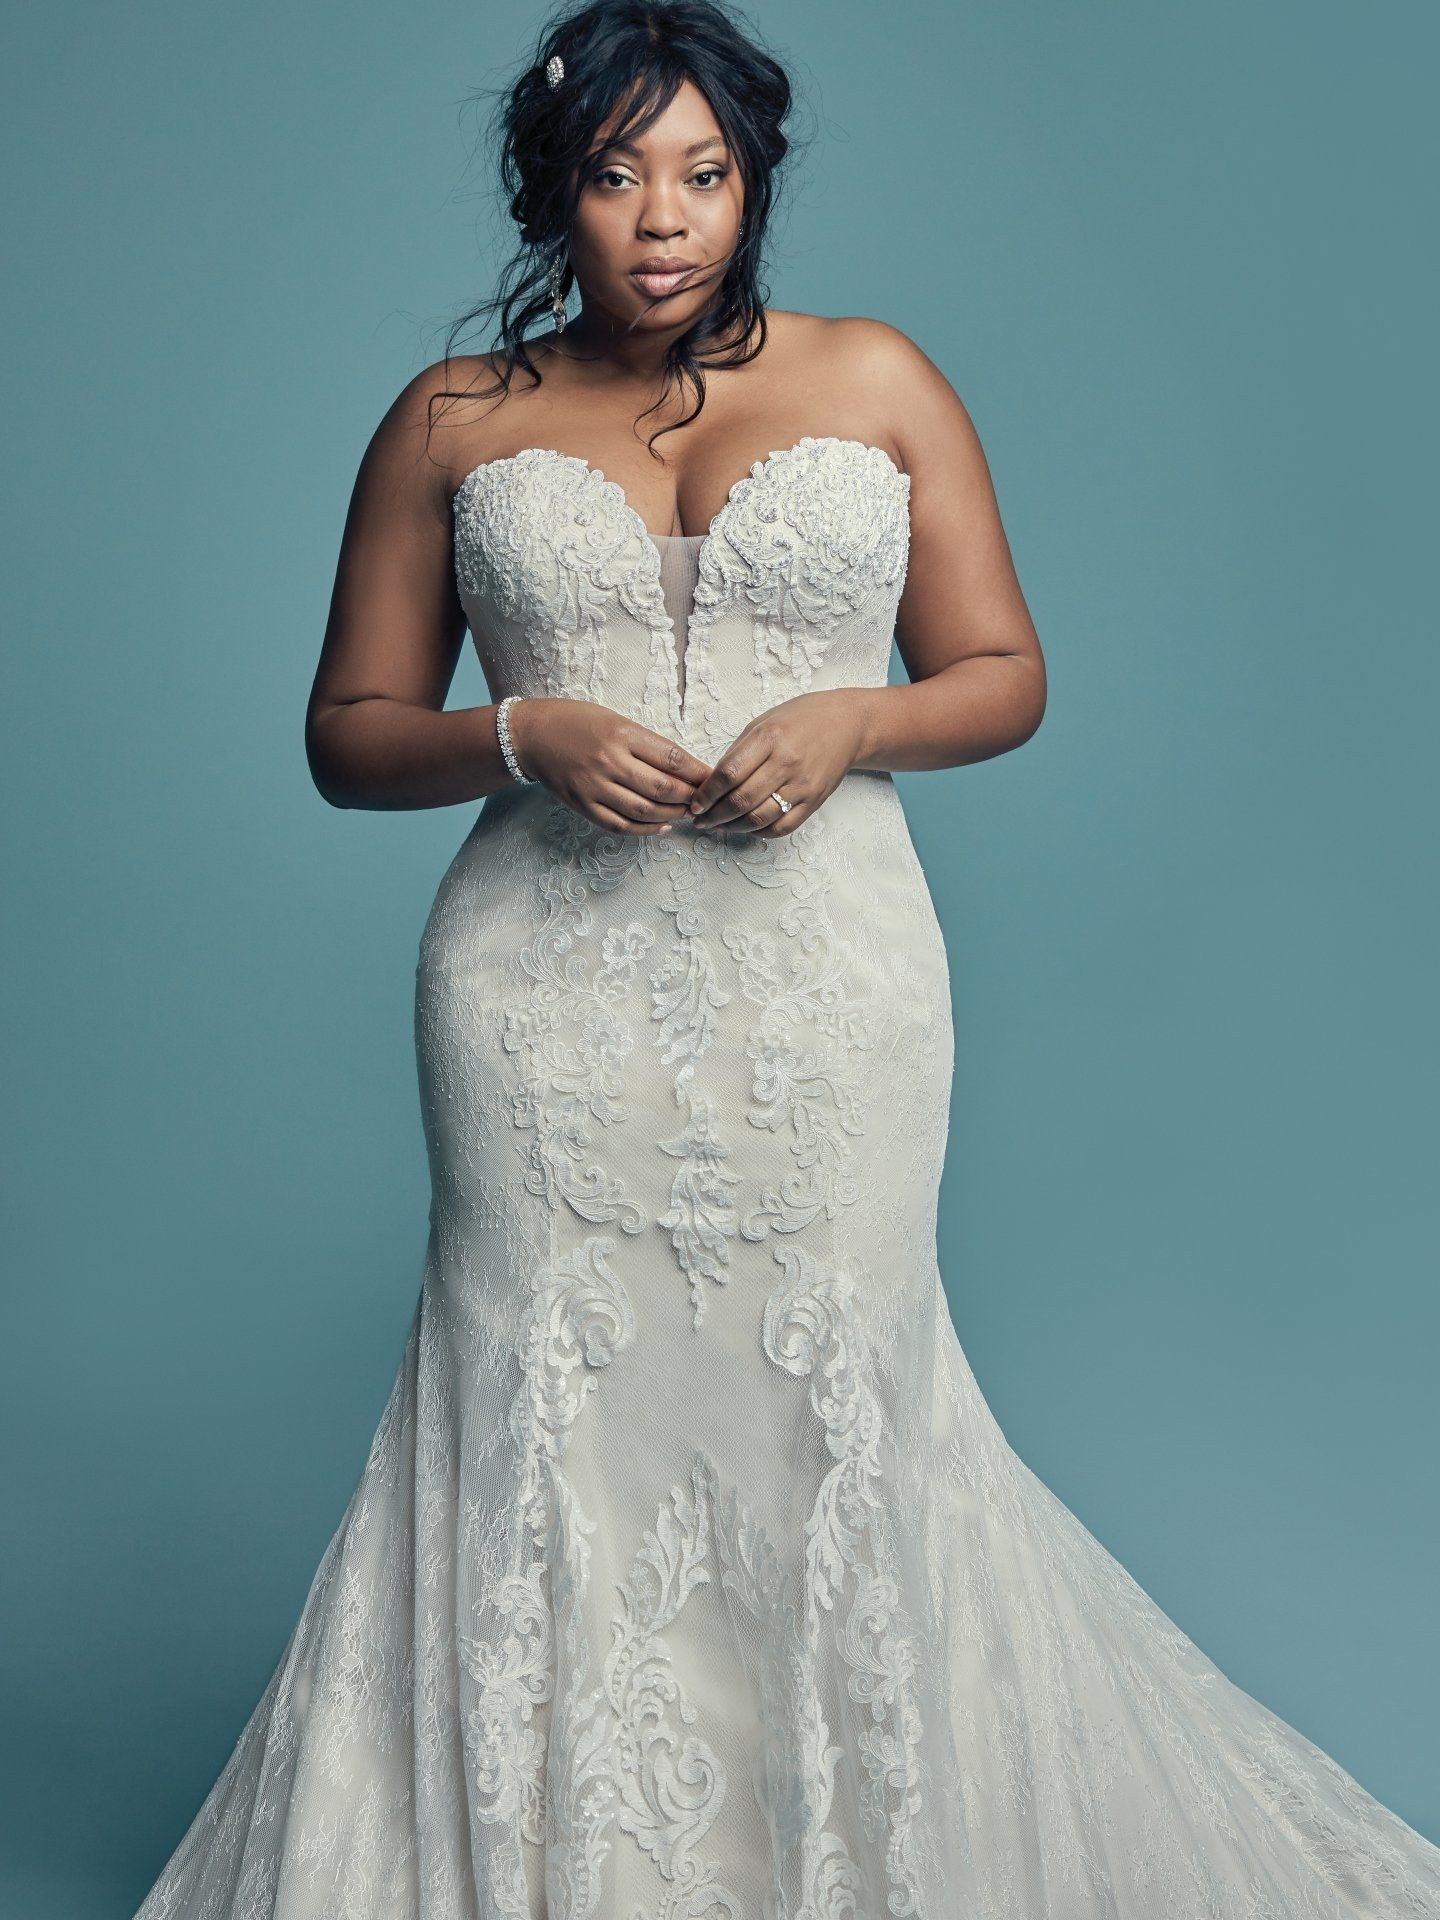 22 Plus Size Wedding Dresses To Flatter And Flaunt Your Curves Plus Wedding Dresses Wedding Dresses Wedding Dresses Plus Size [ 1920 x 1440 Pixel ]